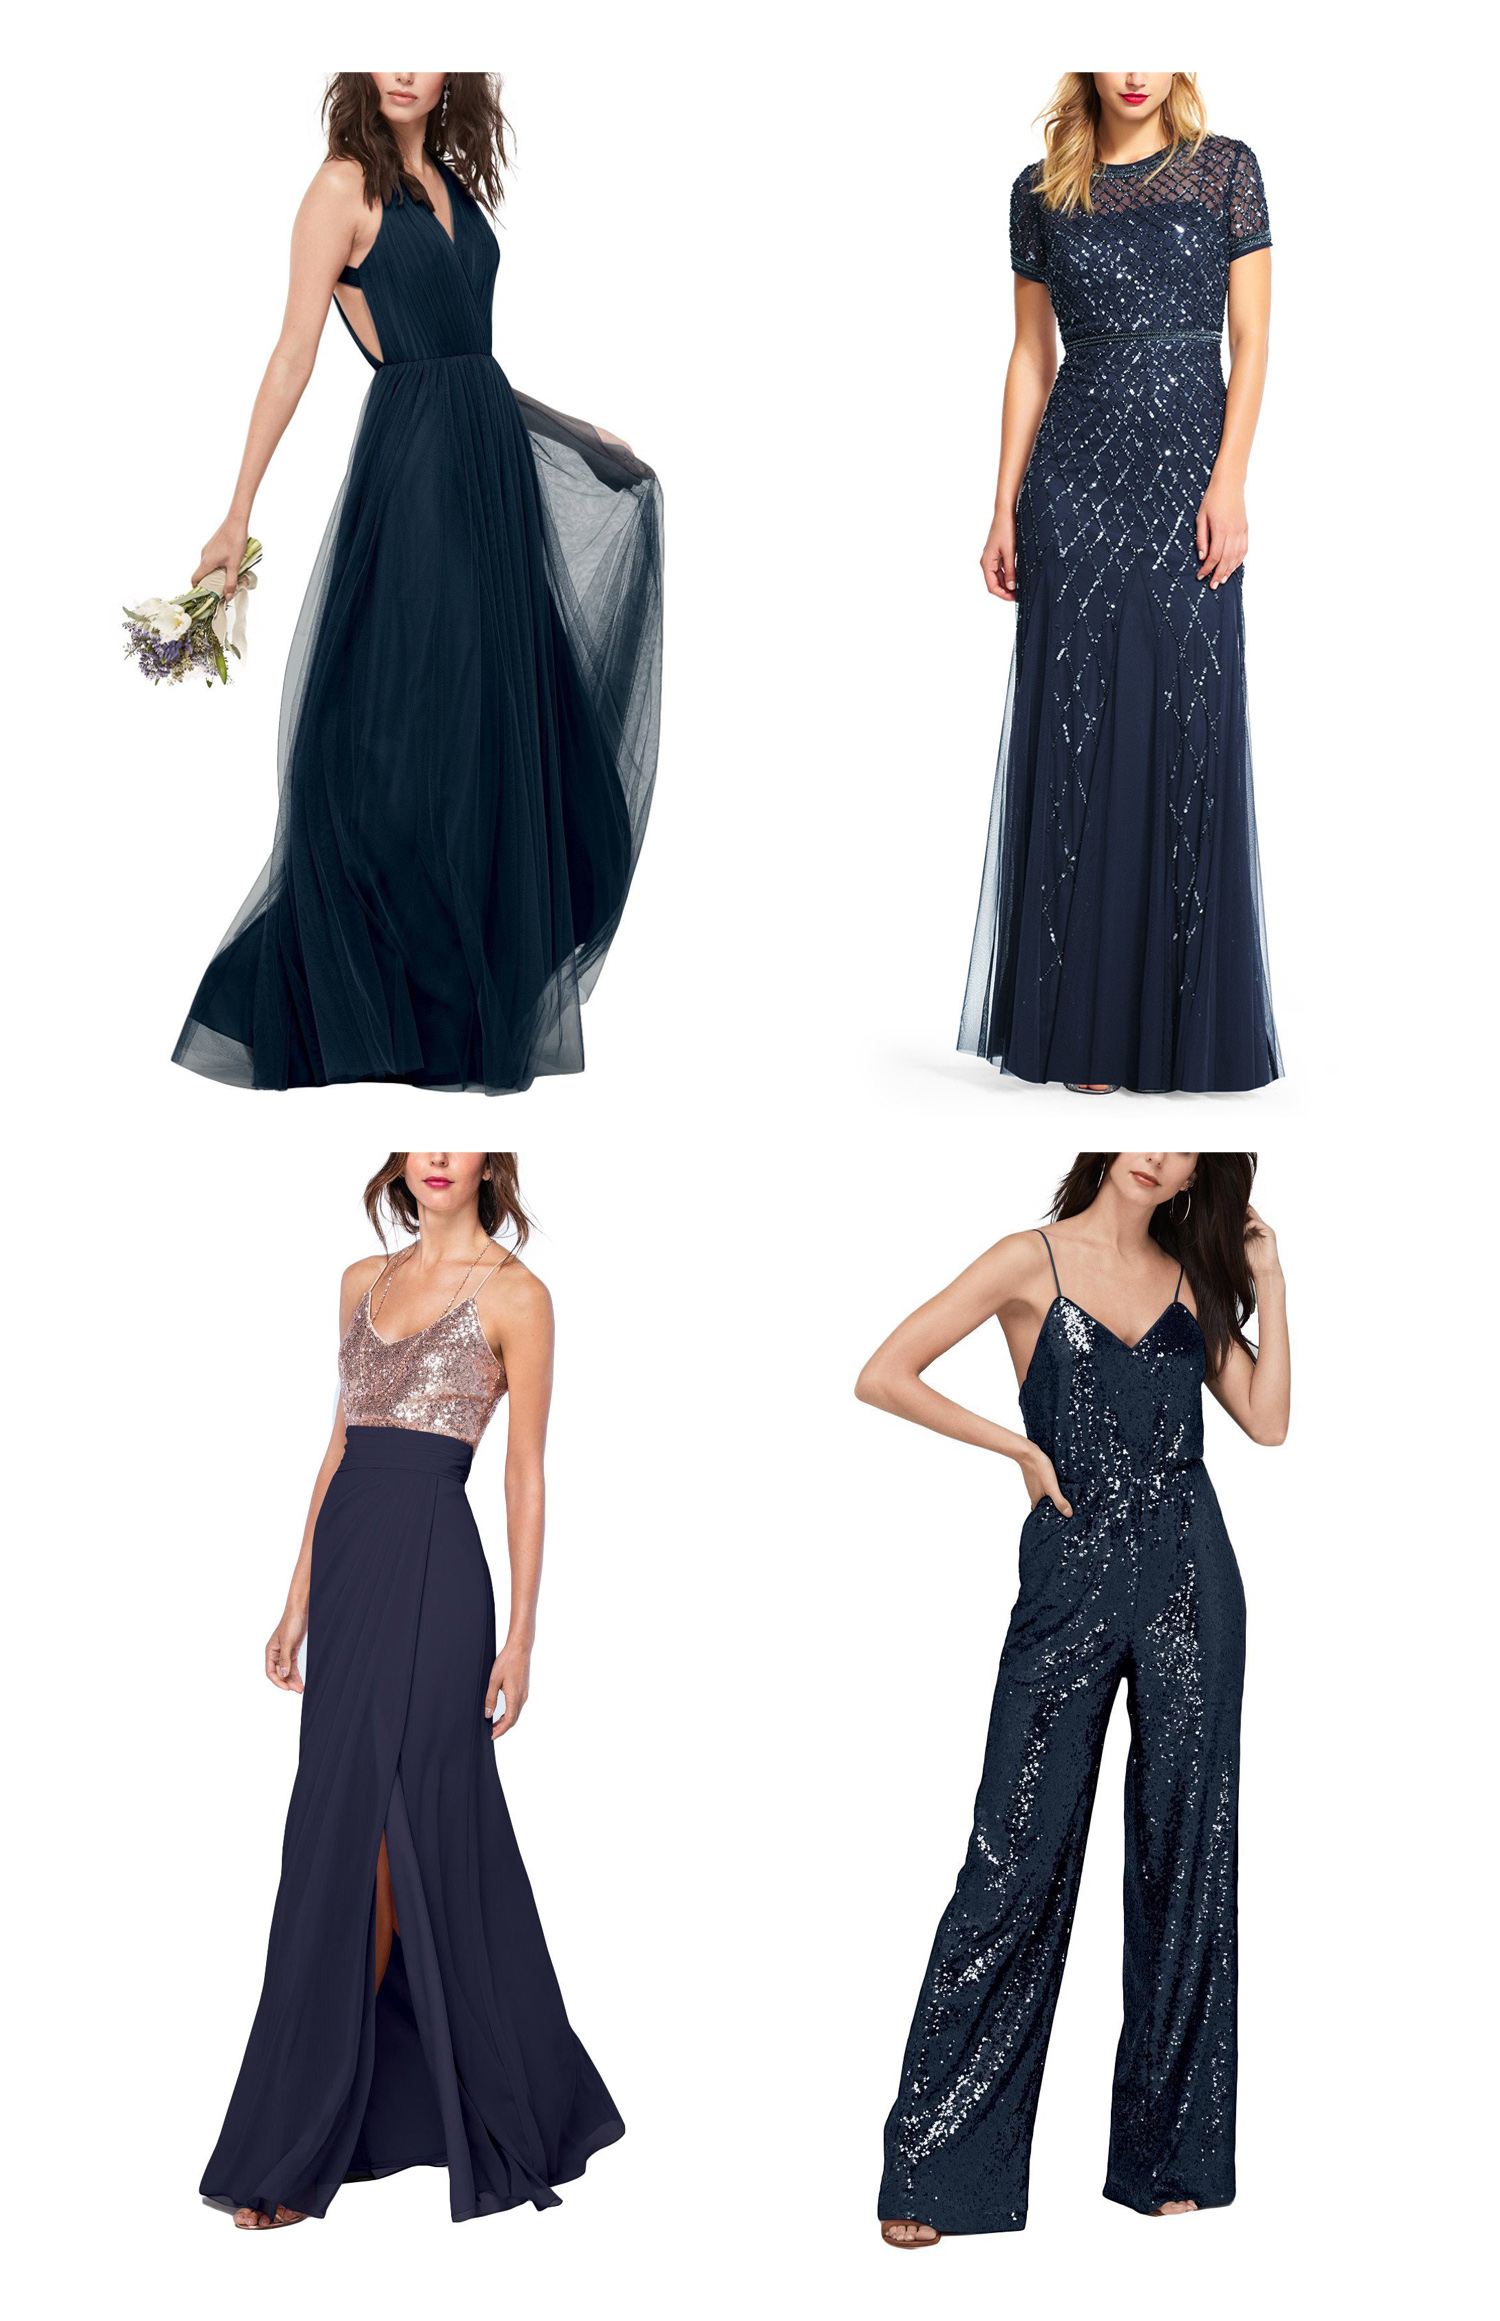 graphic featuring mismatched bridesmaid dresses in shades of navy and sequins